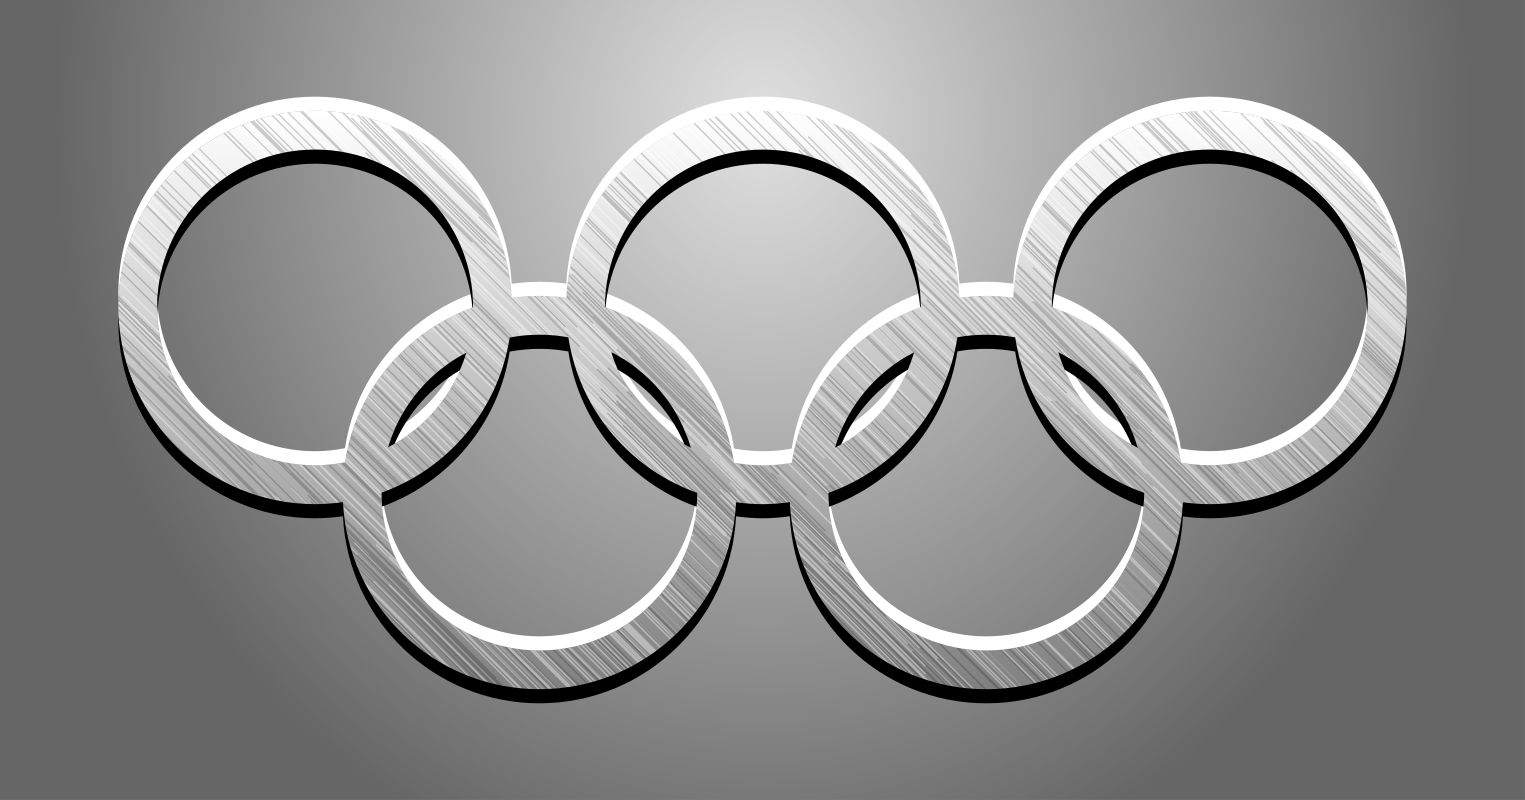 Olympic Rings 3 by gustavorezende